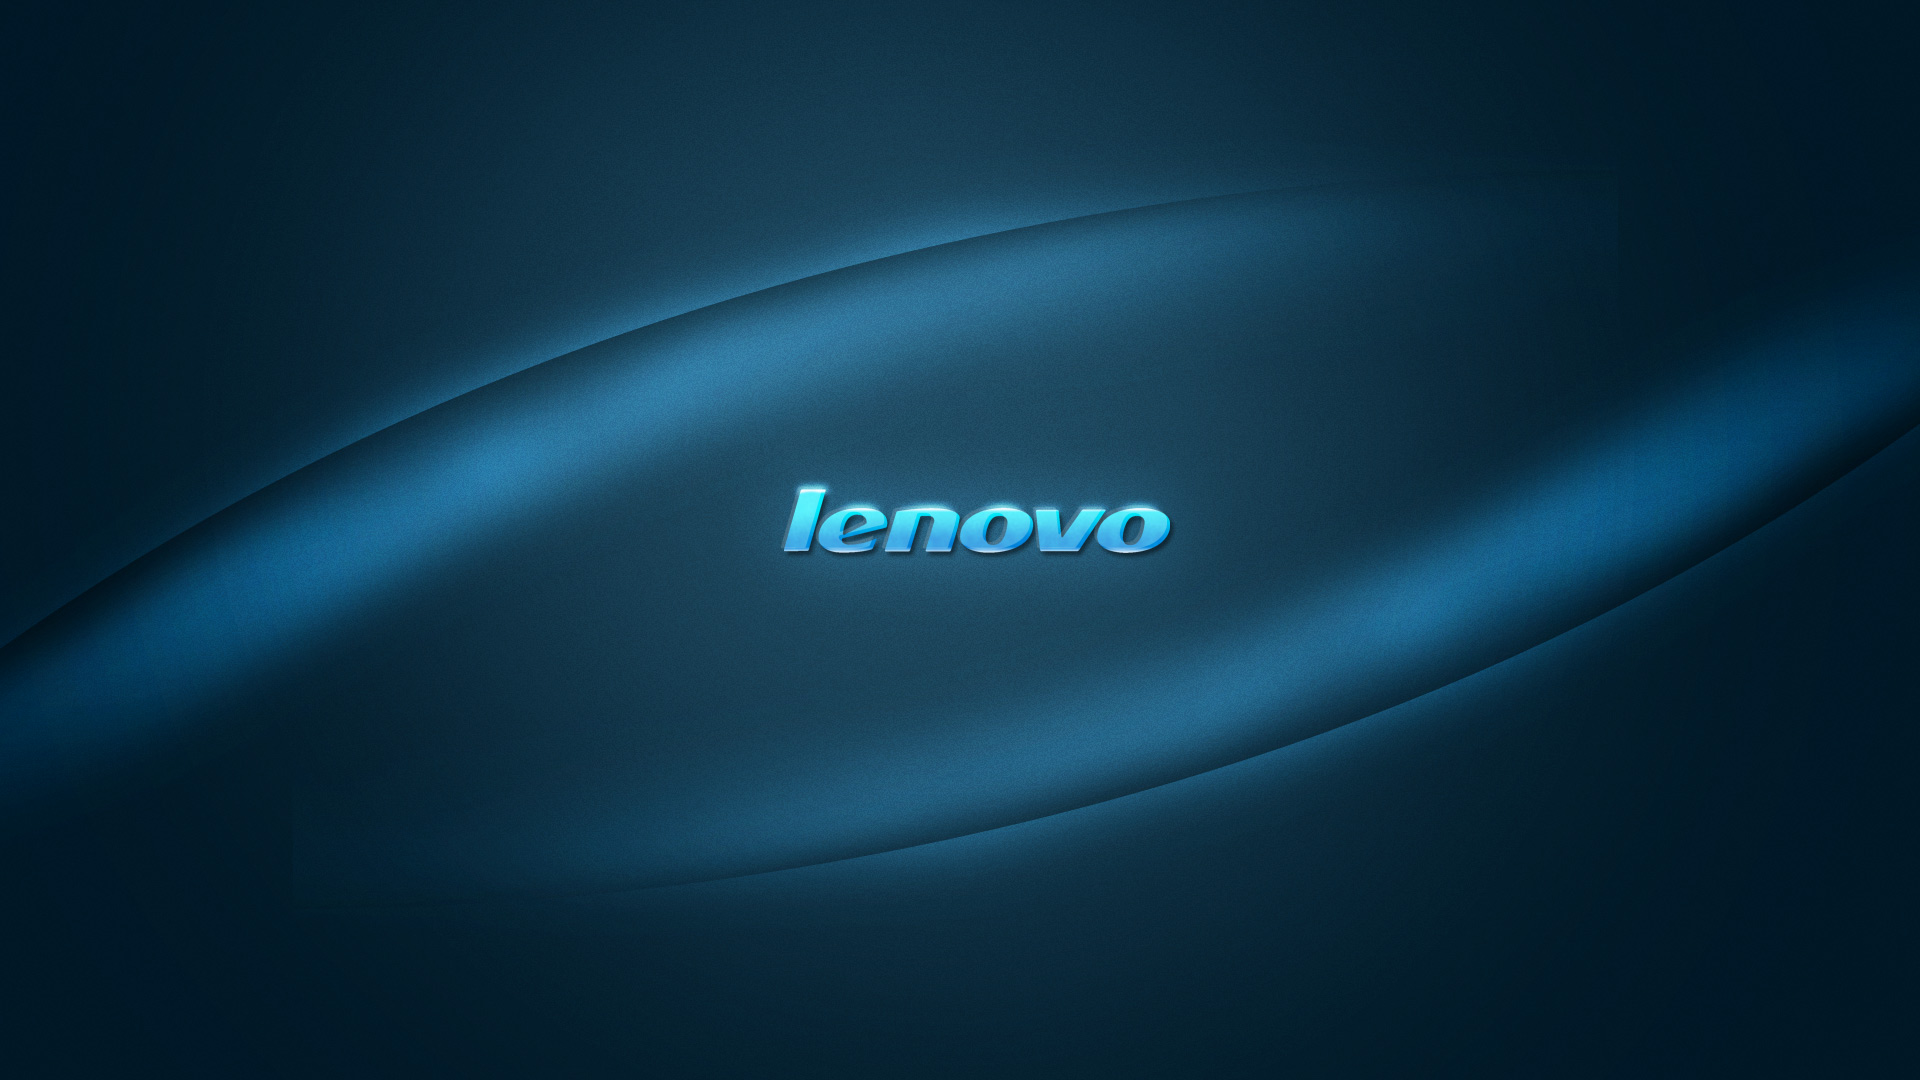 Lenovo Wallpaper - HD 1080p by malkowitch